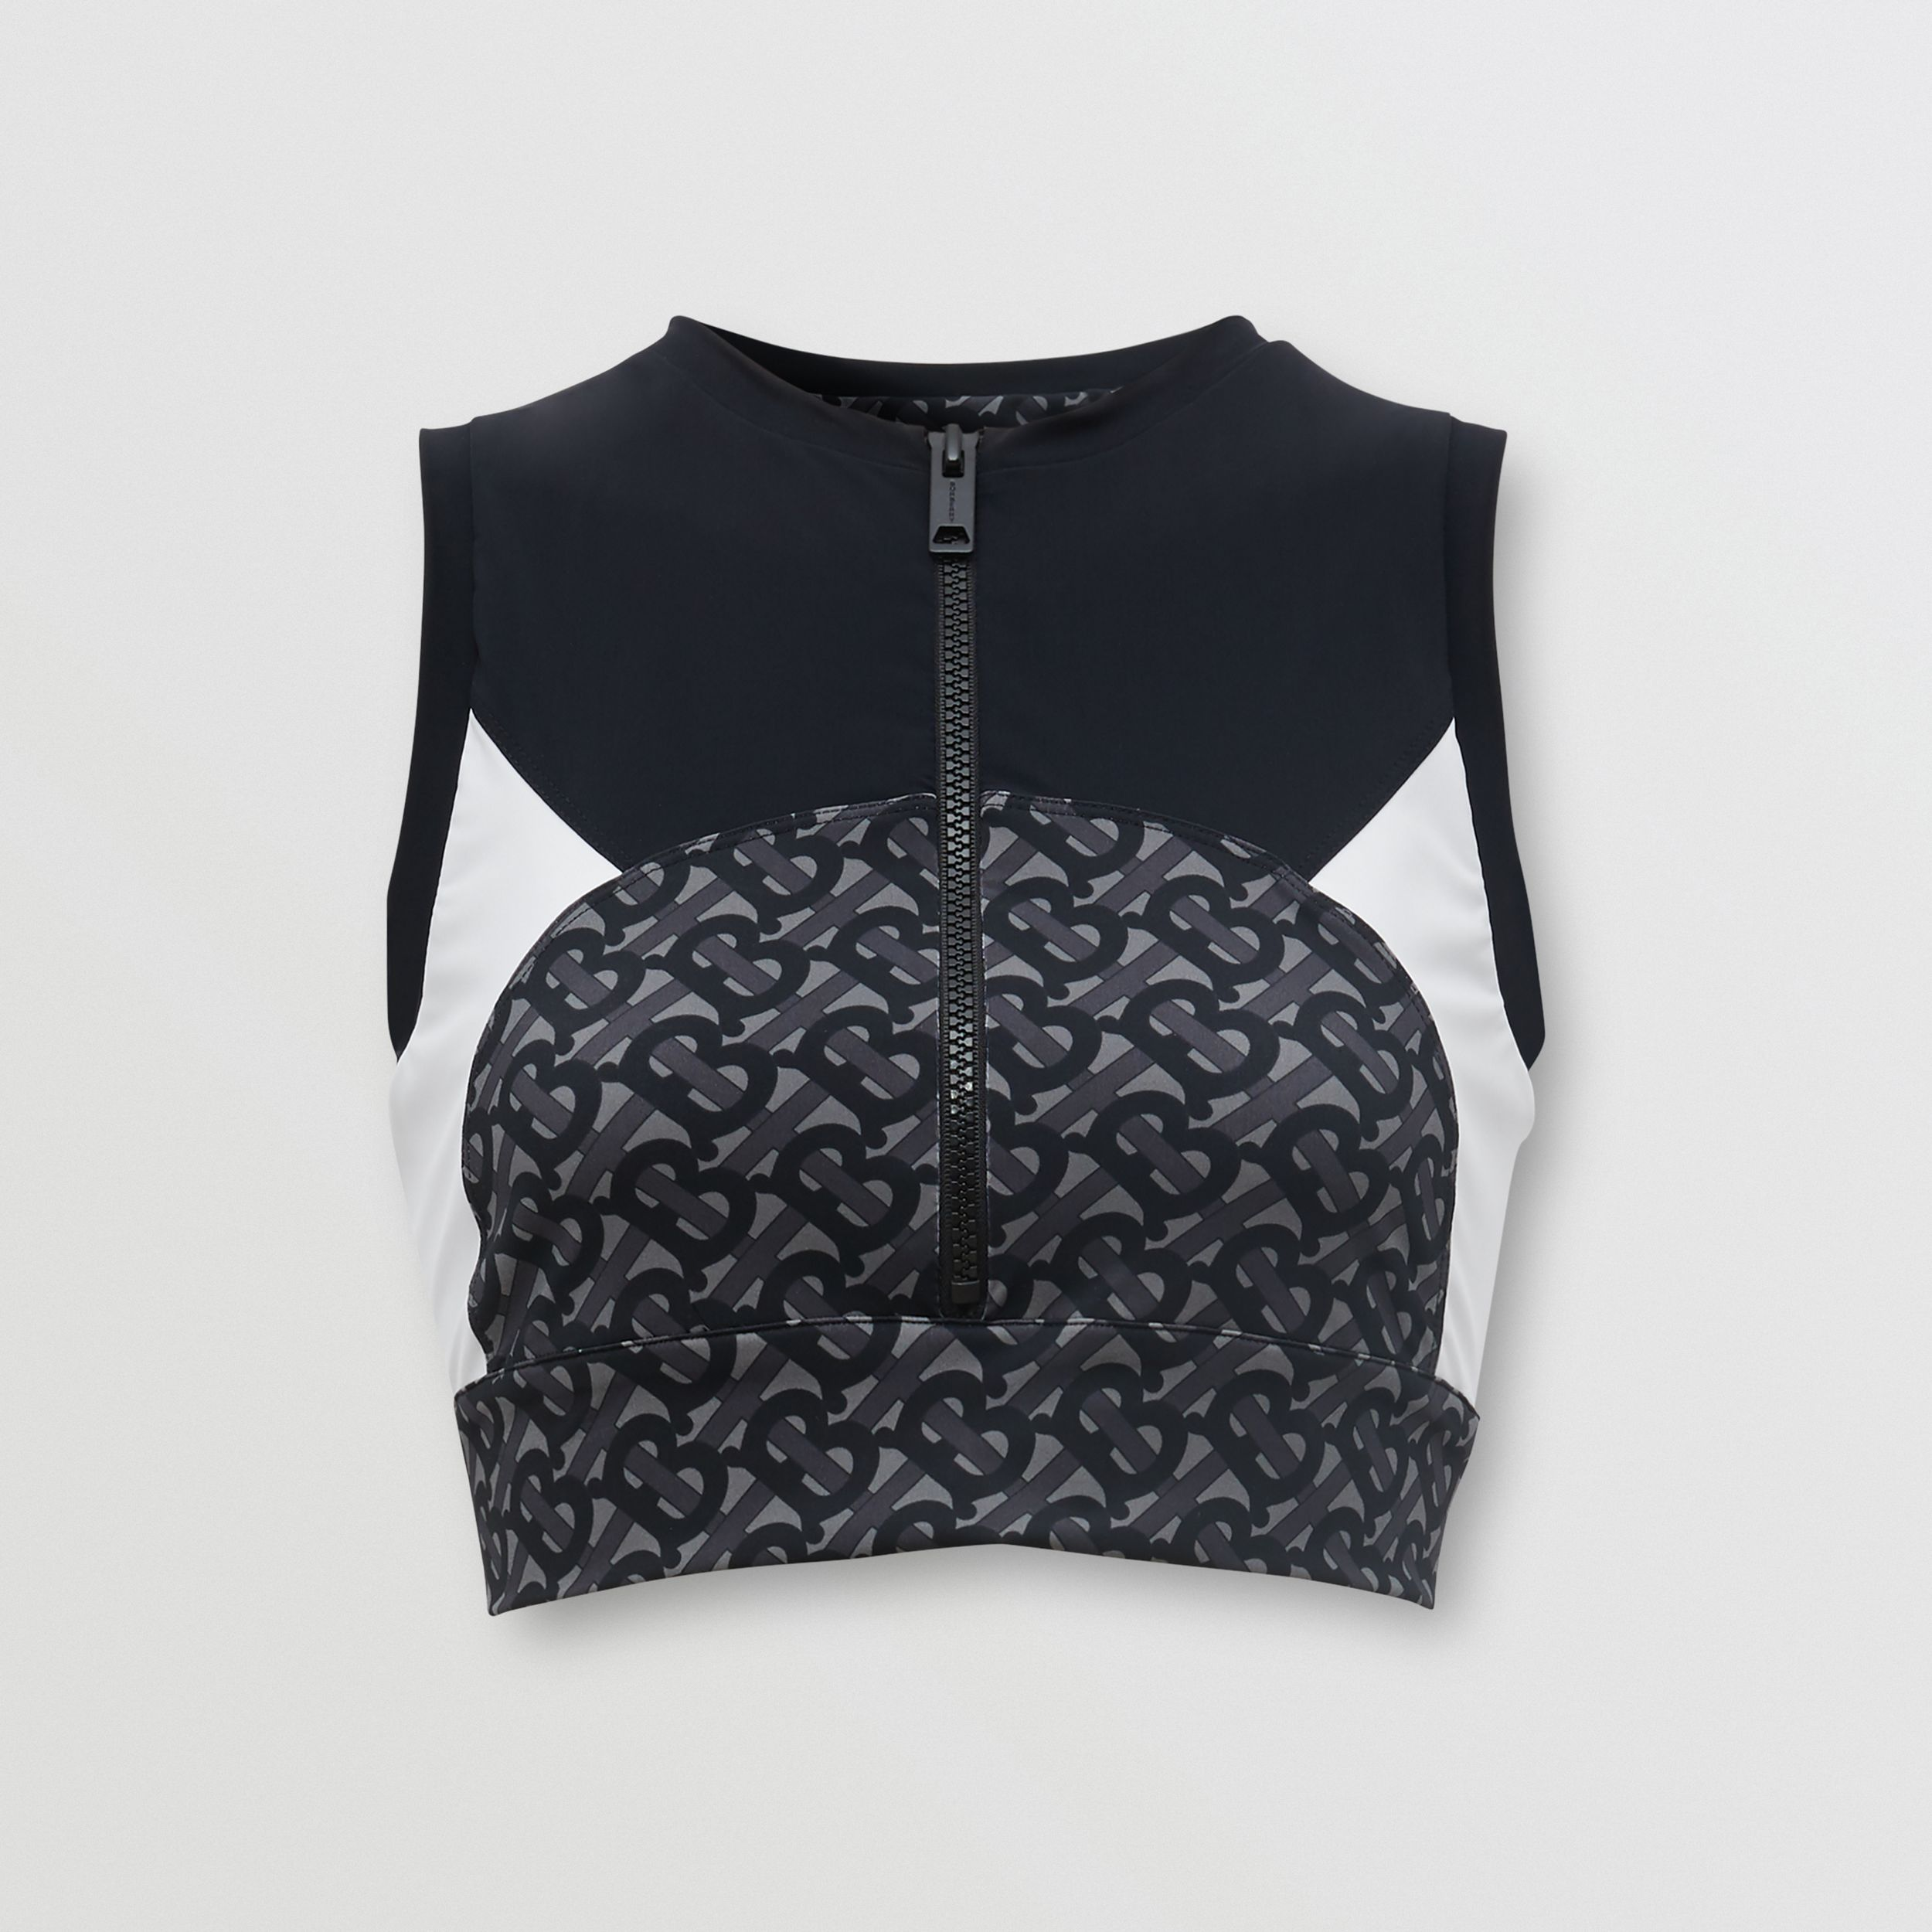 Colour Block Monogram Print Cropped Top in Graphite - Women | Burberry - 4